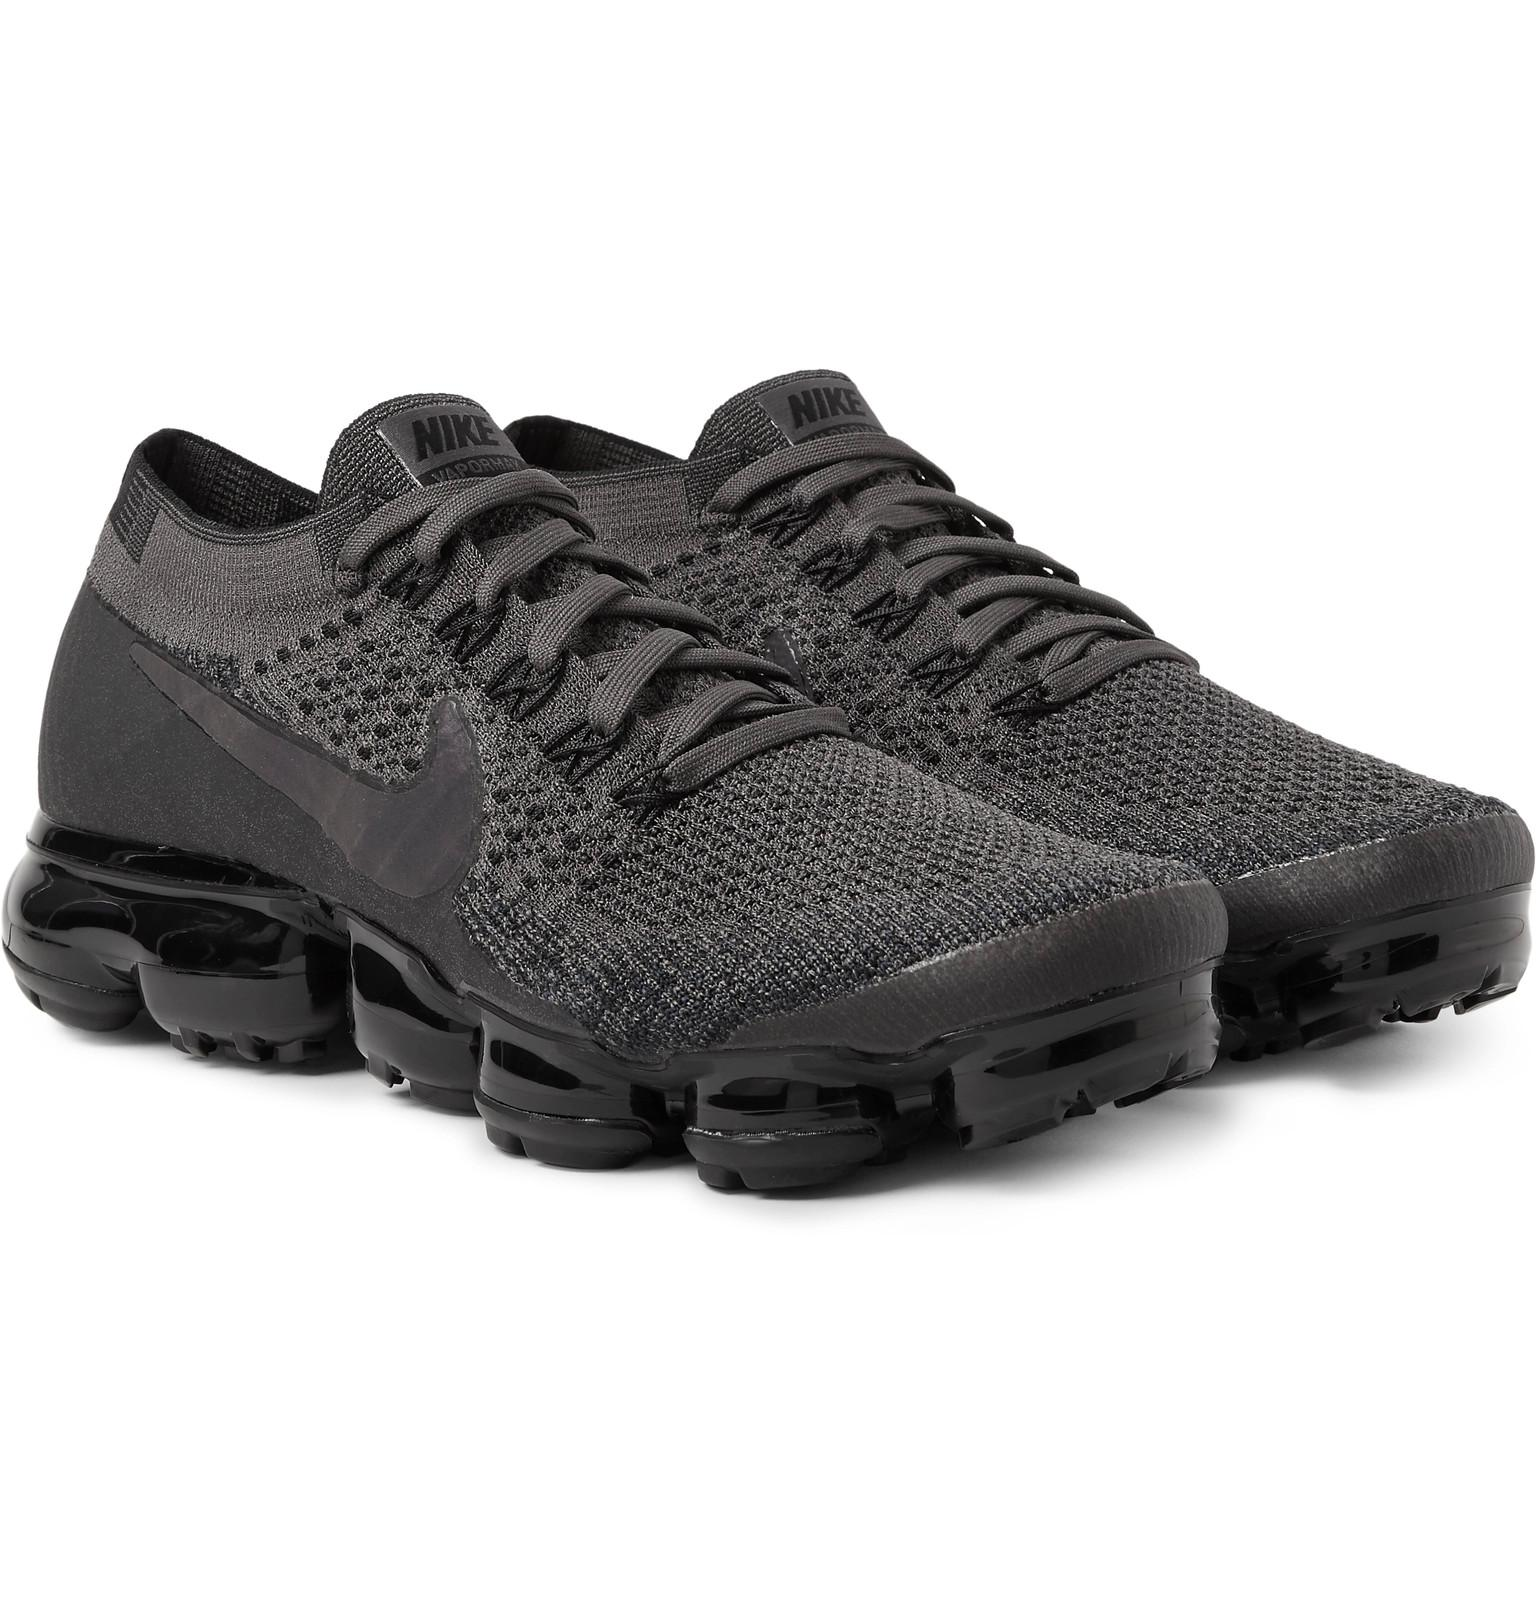 8e7d4c2cae73c2 Lyst - Nike - Lab Air Vapormax Flyknit Sneakers - Charcoal in Gray ...